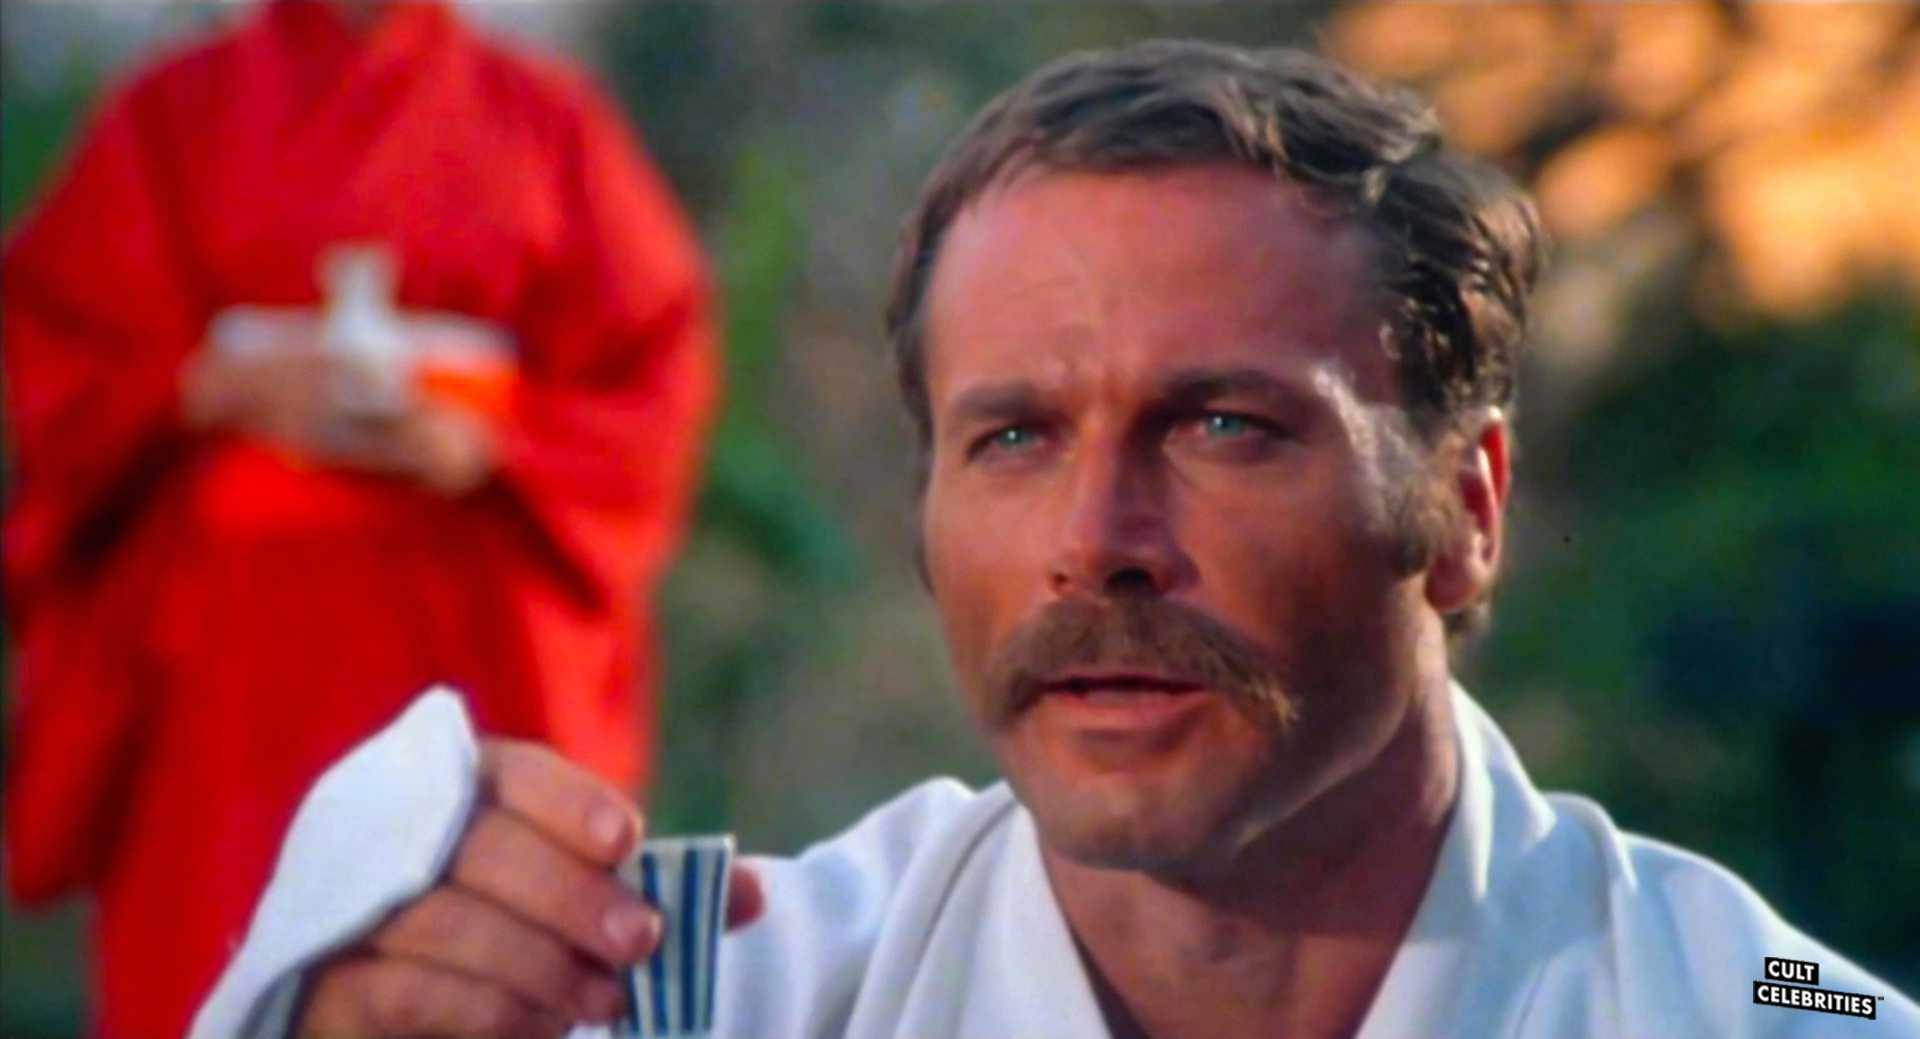 Franco Nero in Enter the Ninja (1981)